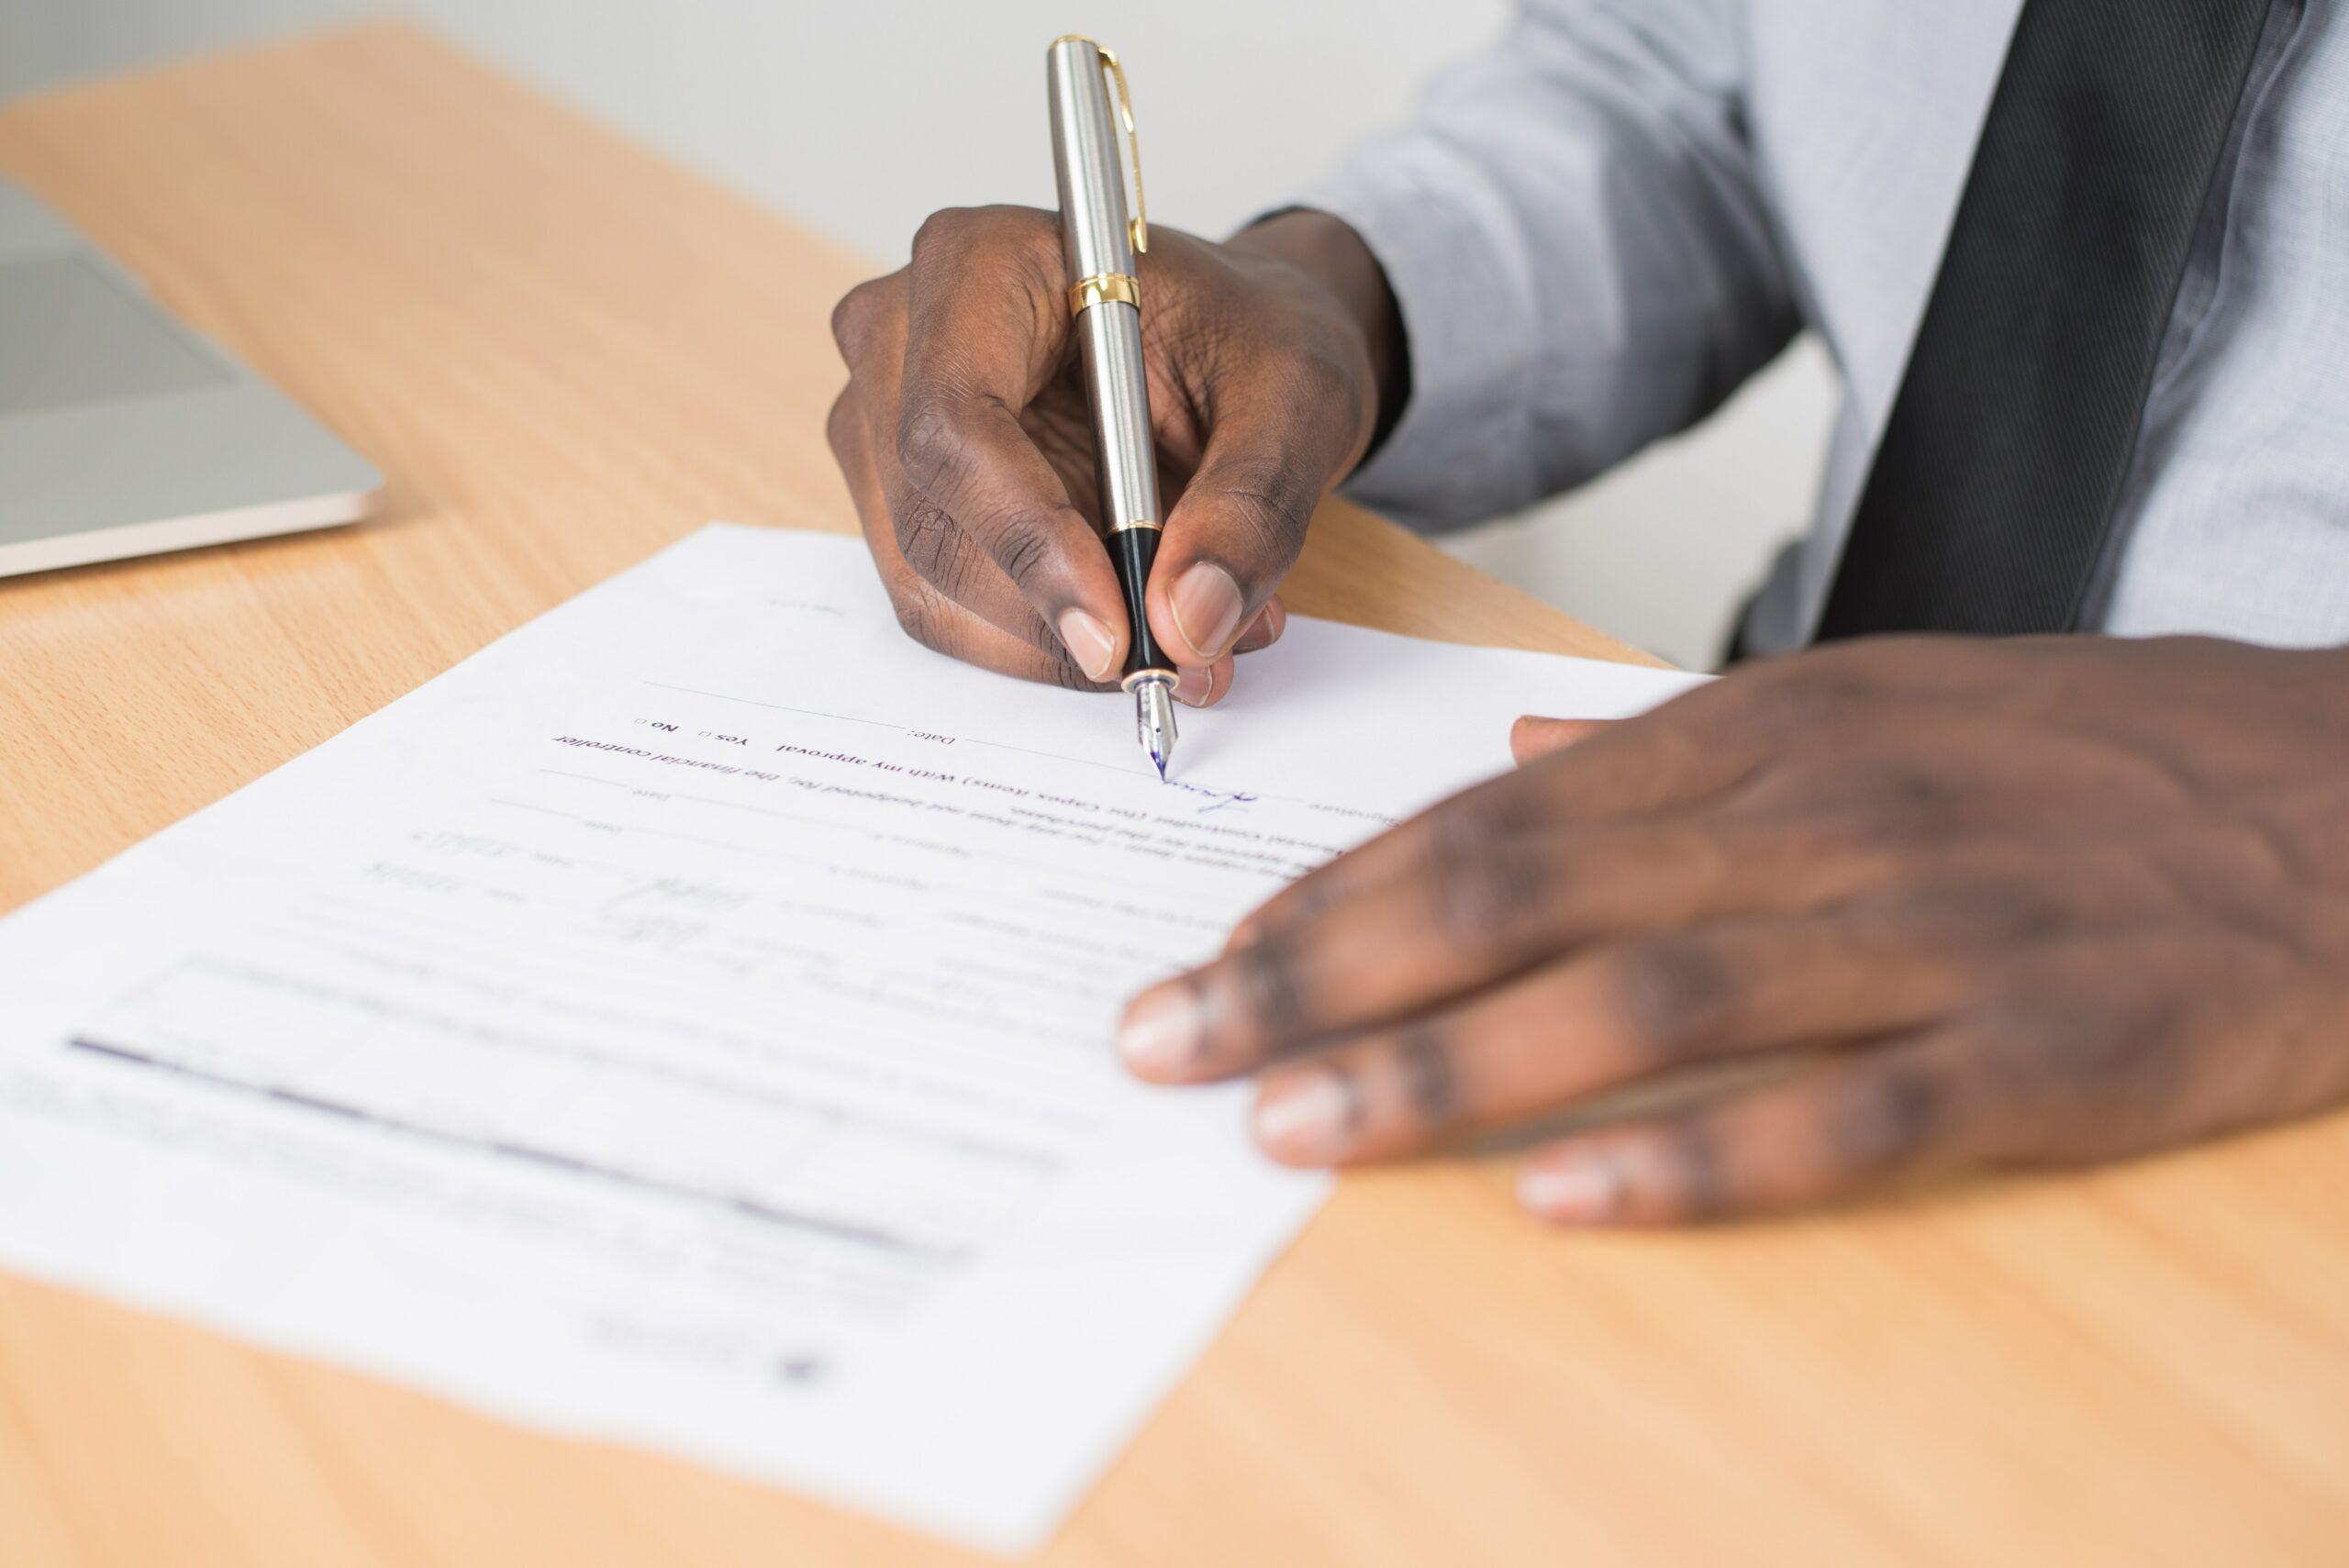 Man Signing Form